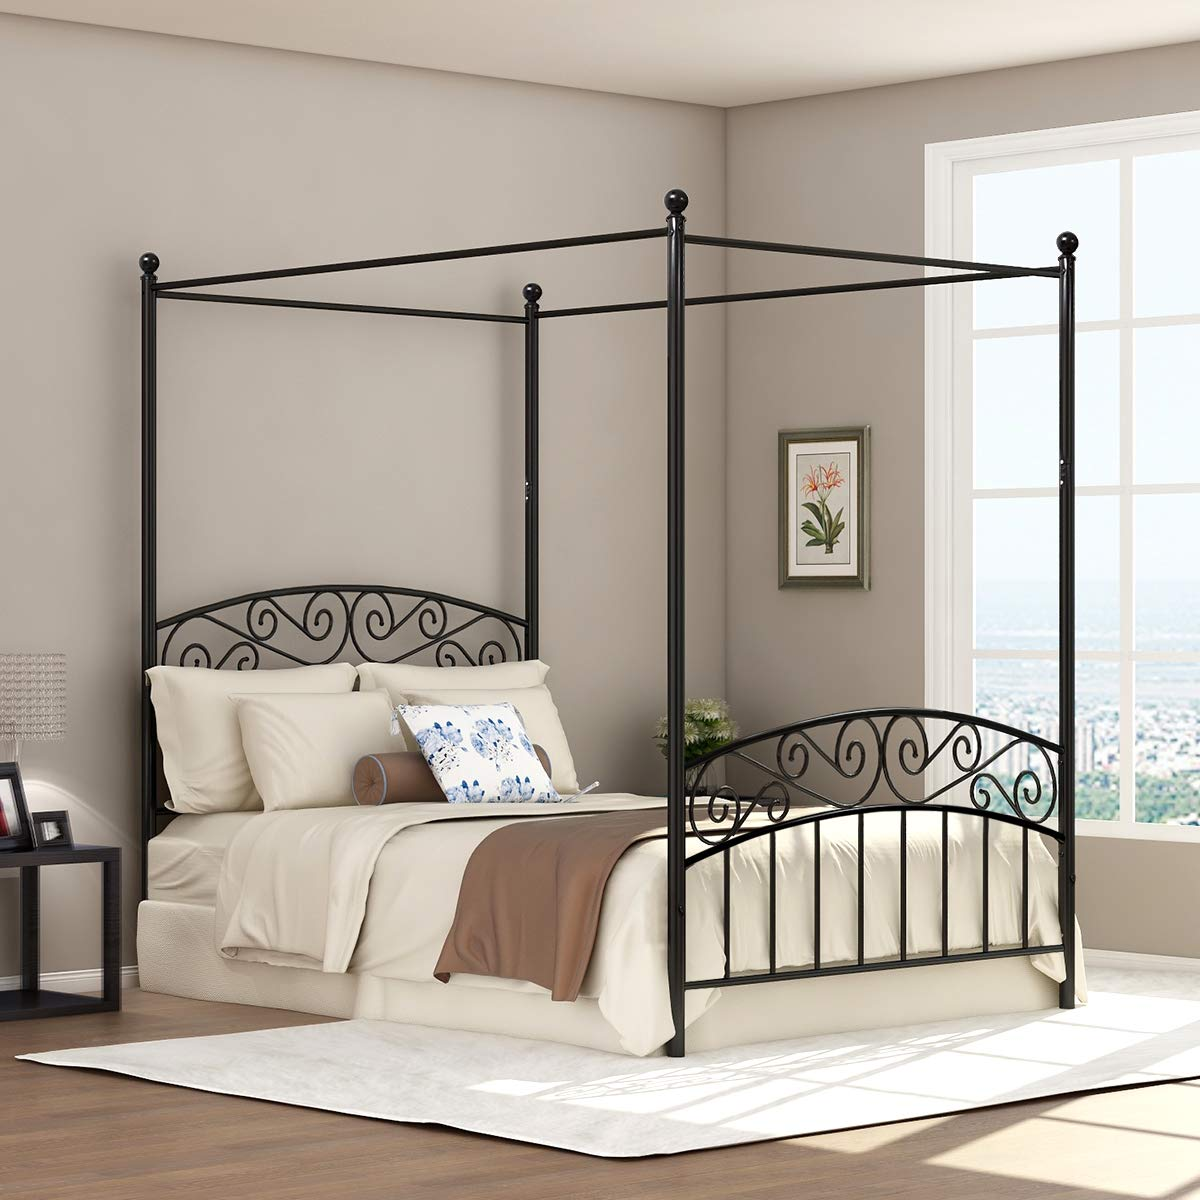 Full Size Metal Canopy Bed Frame with Ornate European Style Headboard & Footboard Sturdy Black Steel Holds 660lbs Perfectly Fits Your Mattress Easy DIY Assembly All Parts Include (Black, Full-Deluxe) by DUMEE